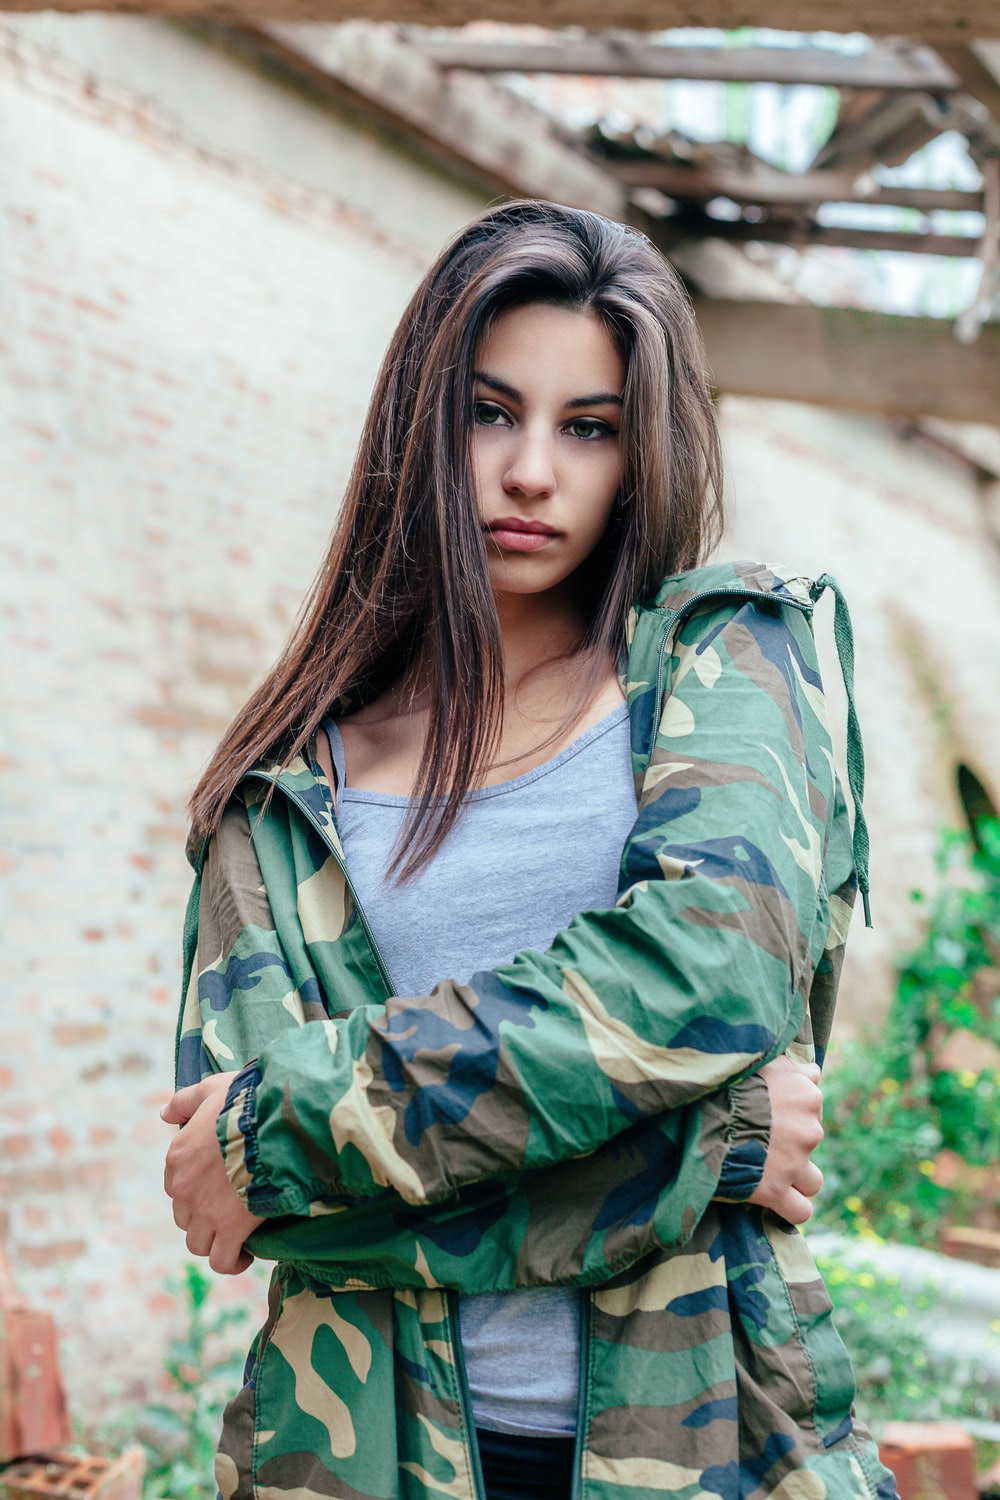 woman in gray spaghetti strap shirt and camouflage jacket